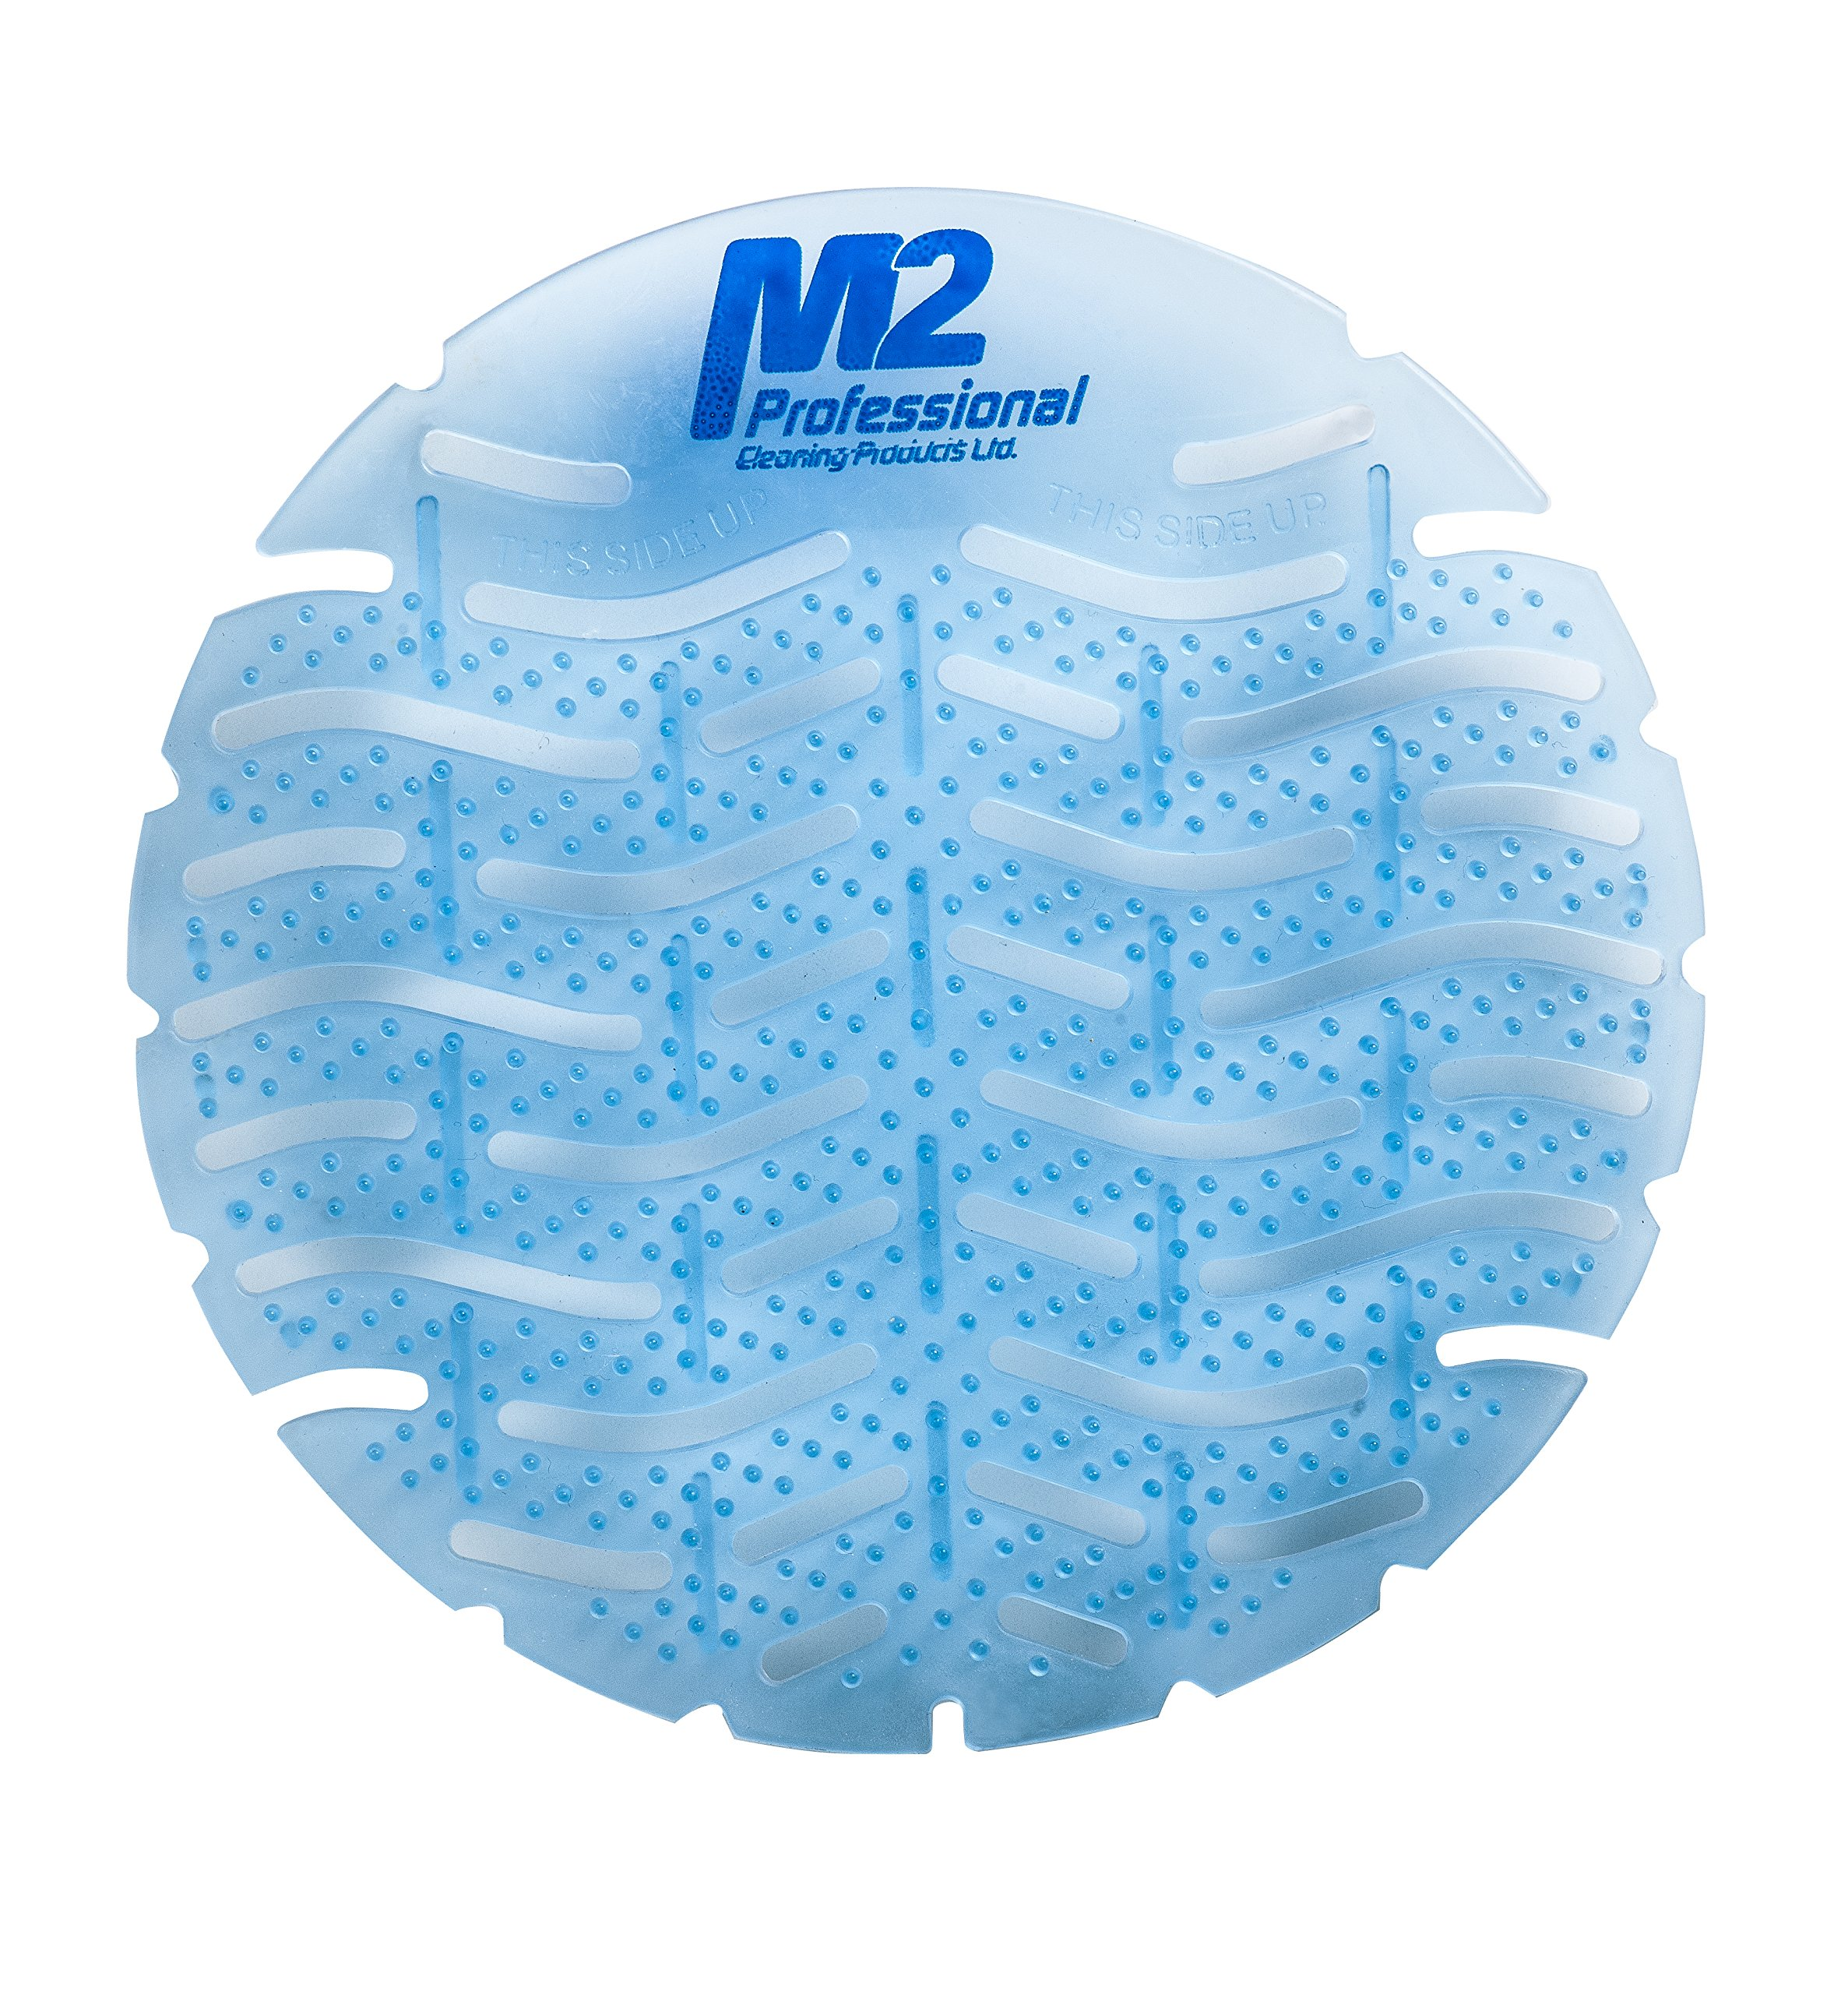 M2 Professional WAVE Scented Urinal Screen and Deodorizer - Ocean Breeze (Case of 12)